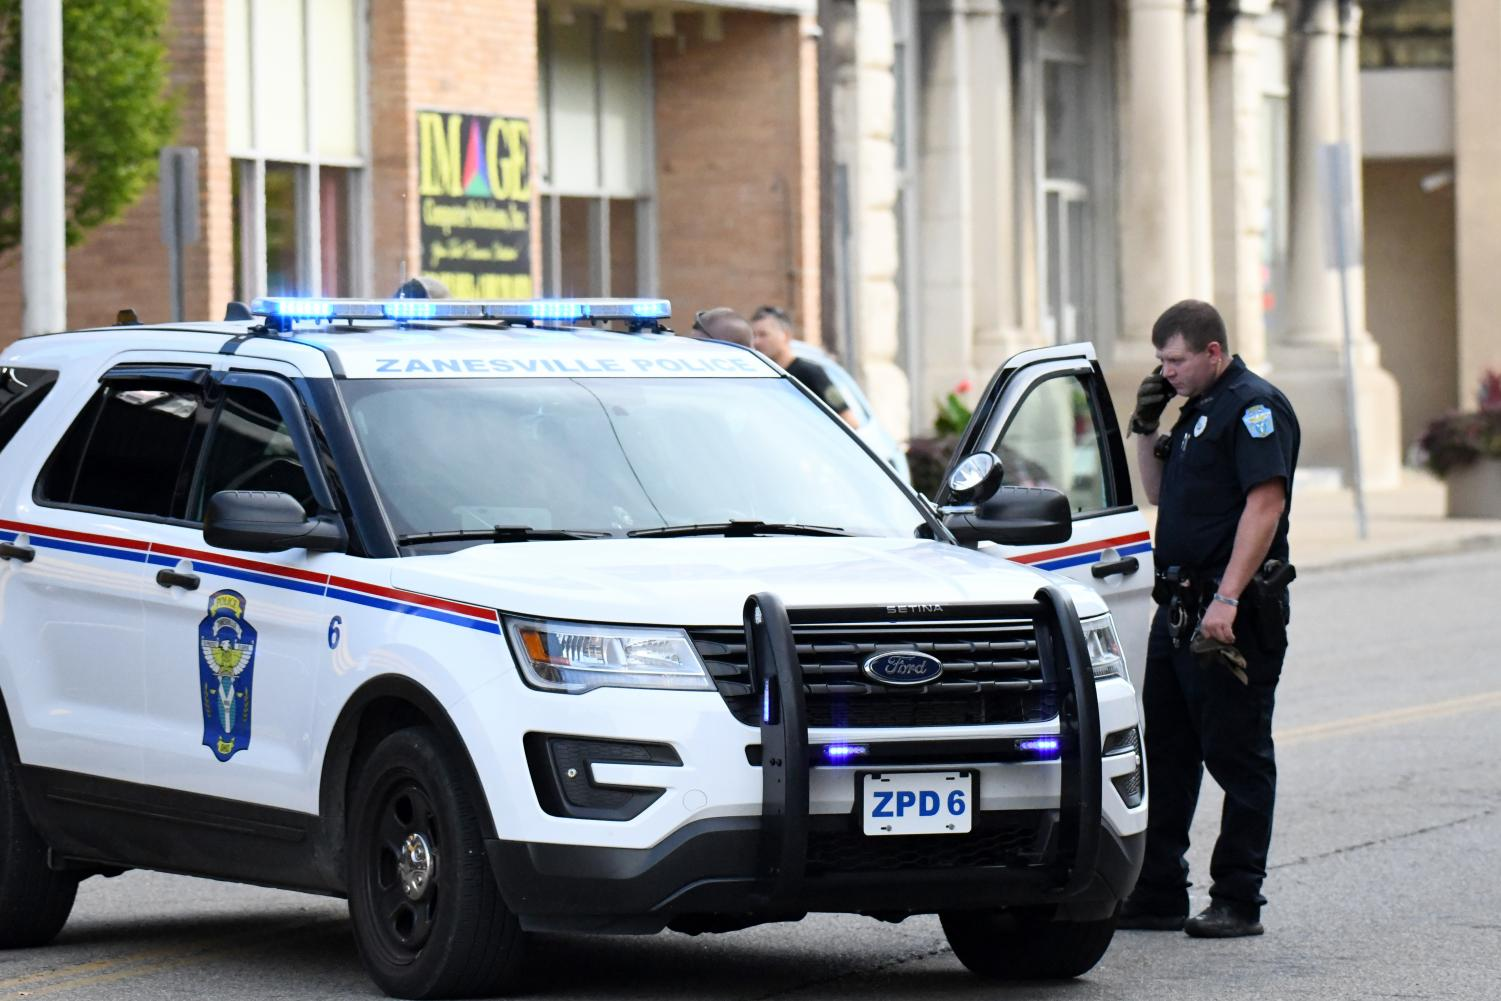 Officer Charles Lewis stands outside a patrol vehicle during an incident in Downtown Zanesville in September.